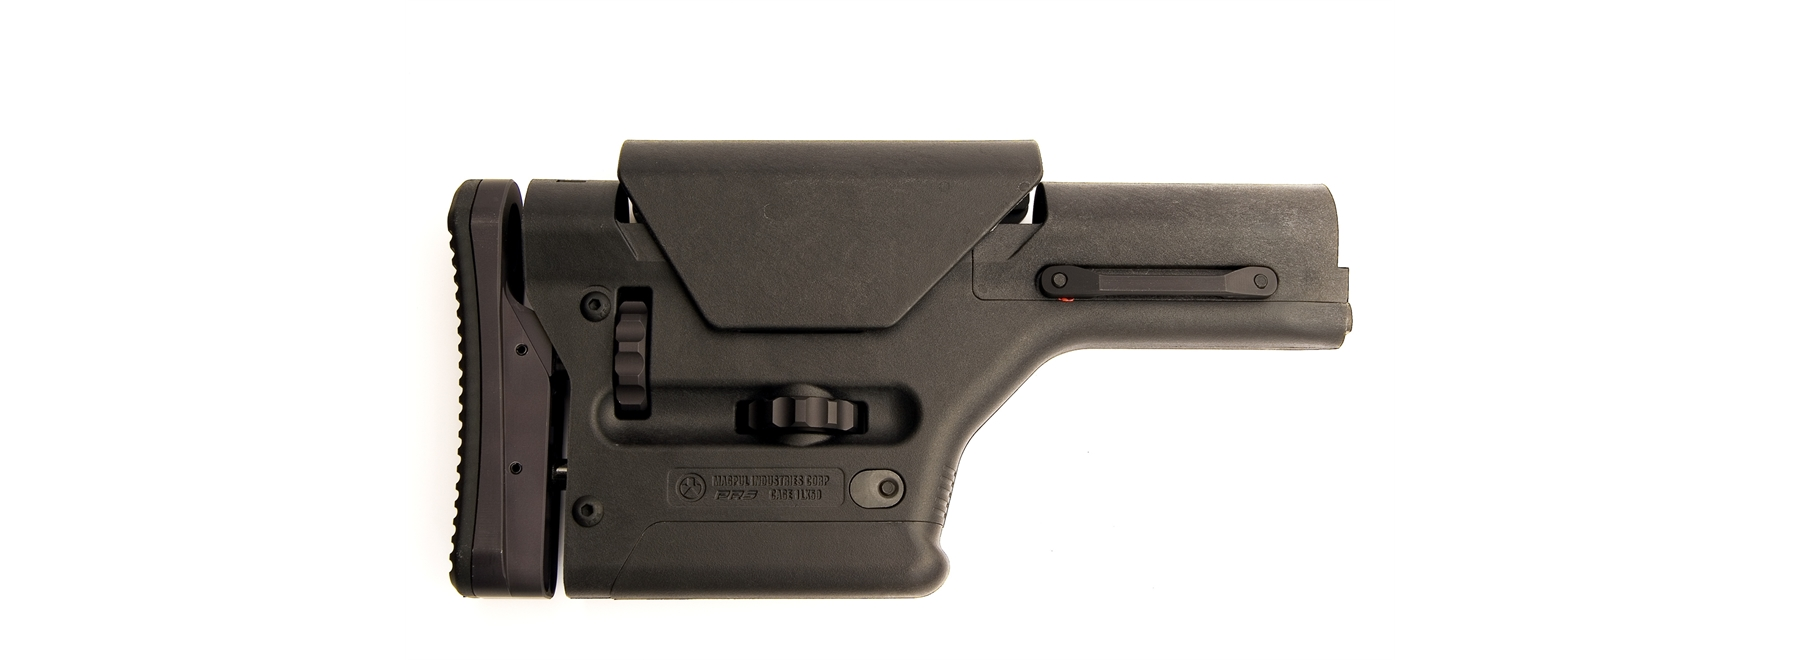 PRS2 (Precision-Adjustable Stock)